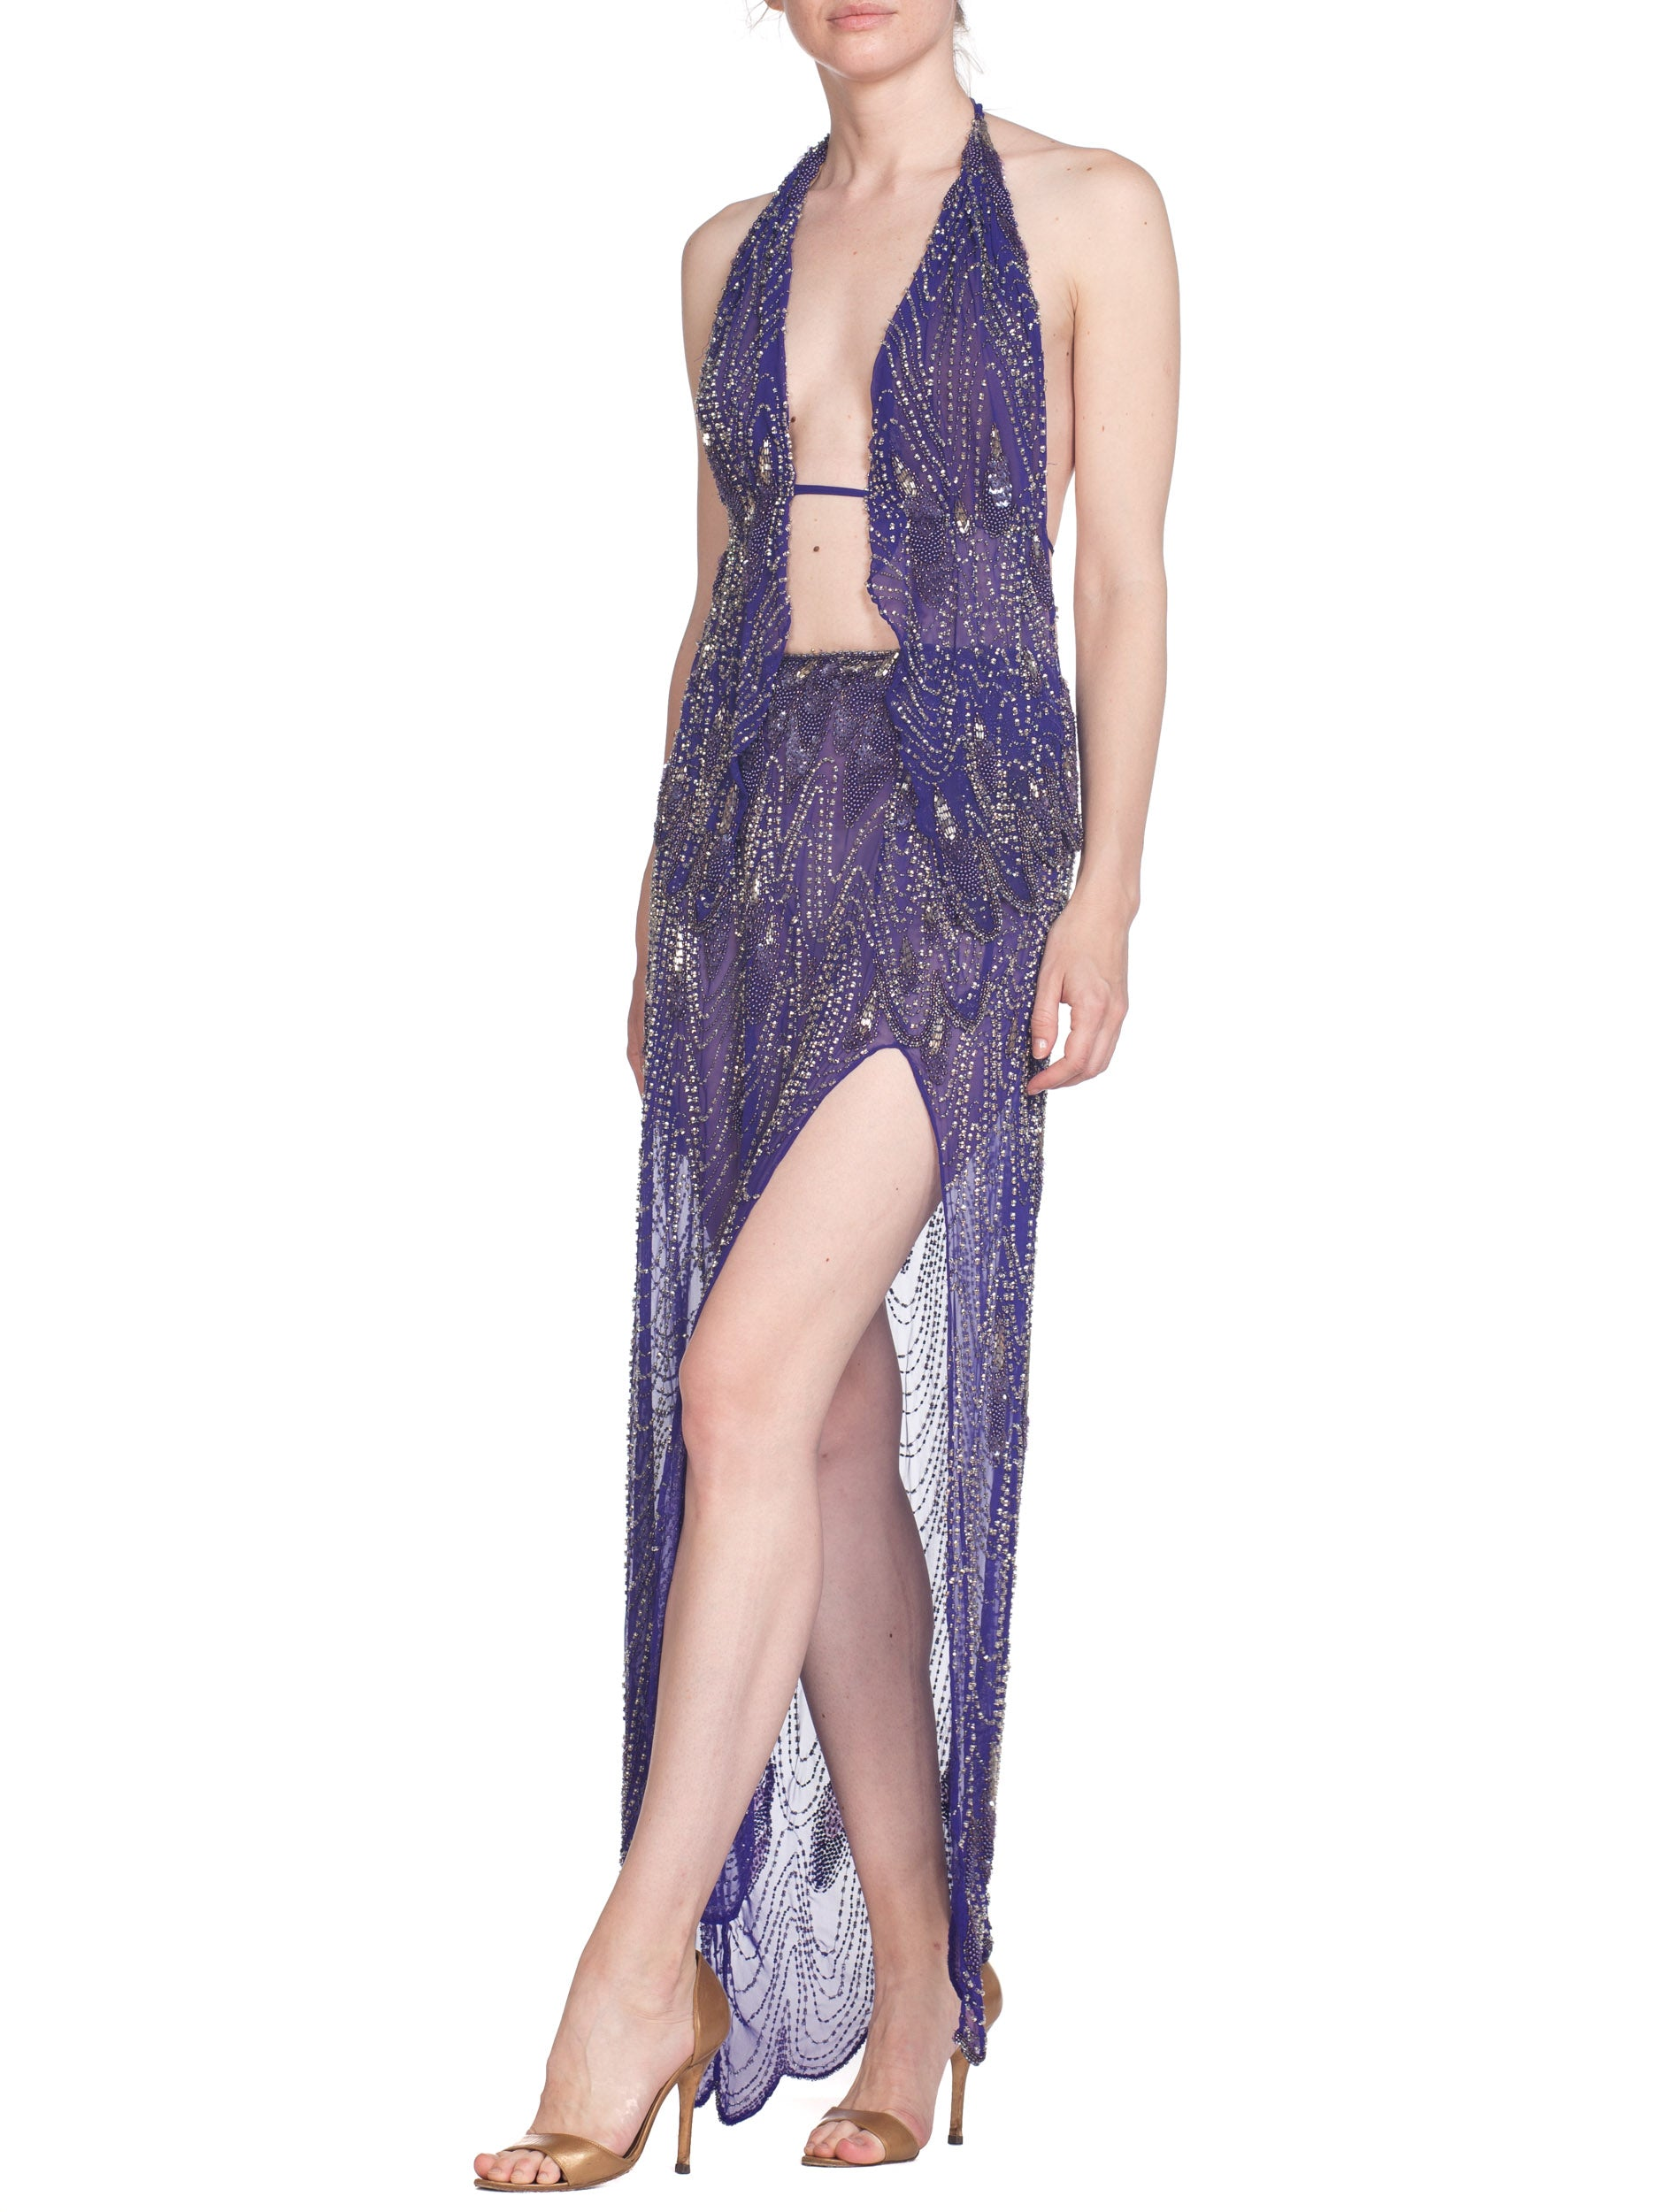 MORPHEW COLLECTION Purple Hand Beaded Silk Chiffon Cher-Inspired 2 Piece Gown With High Slit